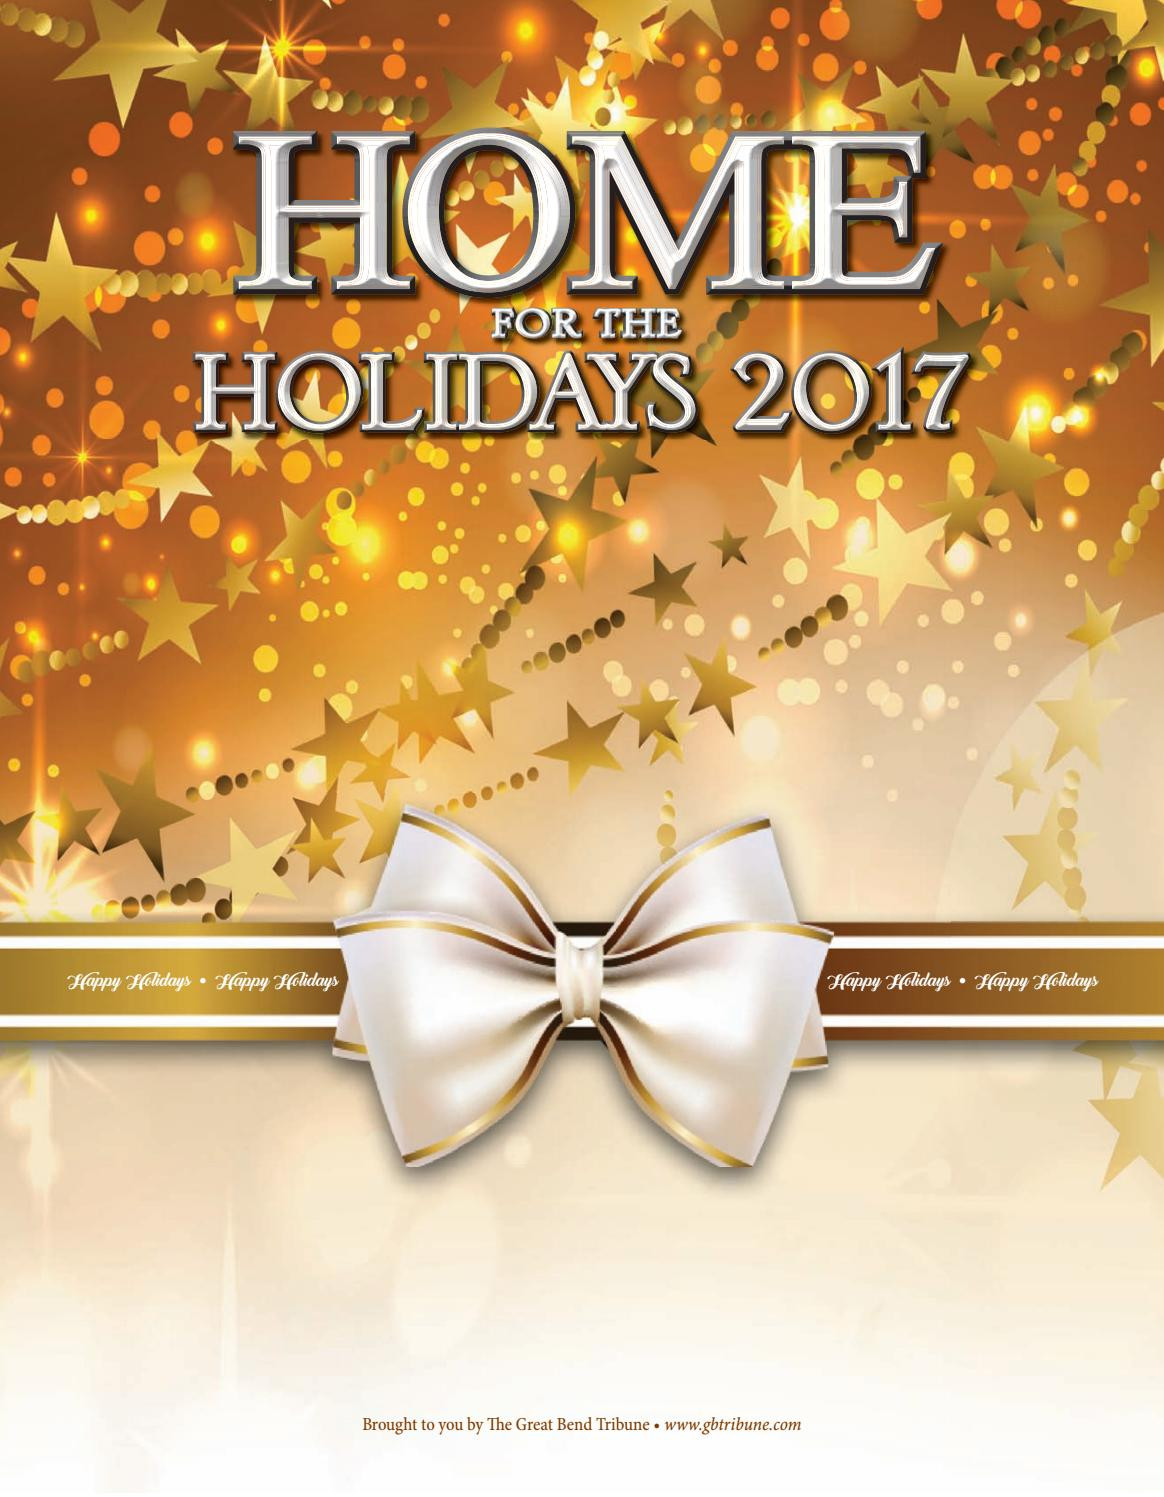 gold crushed glass vase filler of home for the holidays 2017 by great bend tribune issuu intended for page 1